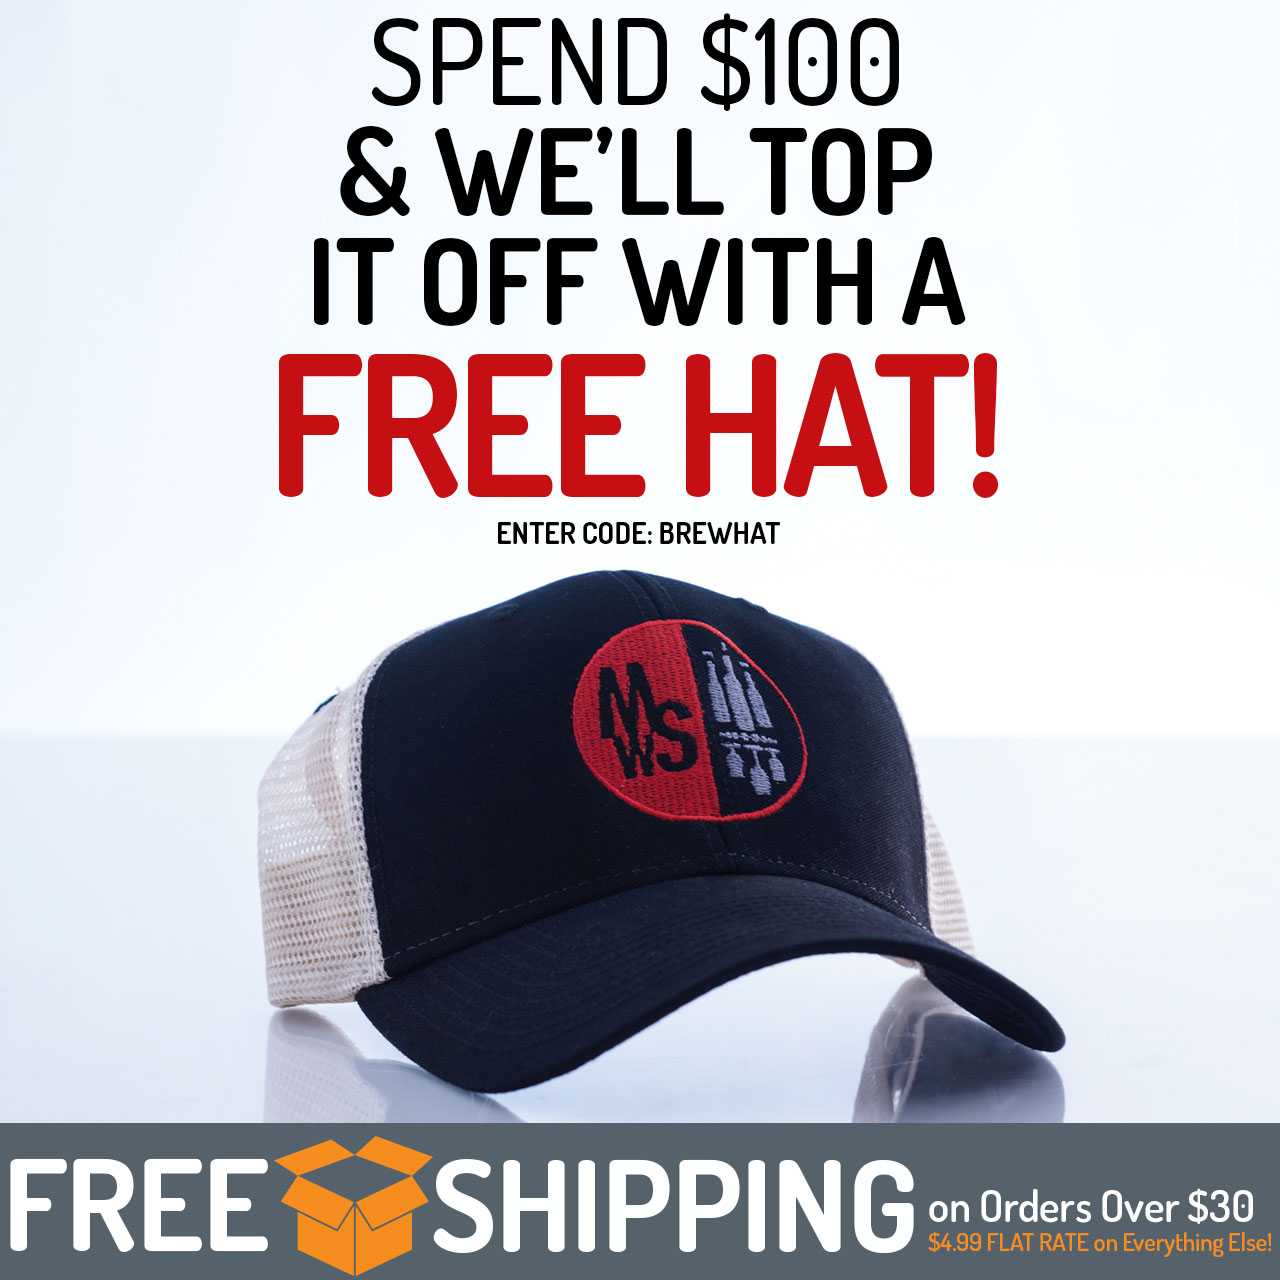 Spend $100 and we'll top it off with a FREE hat.